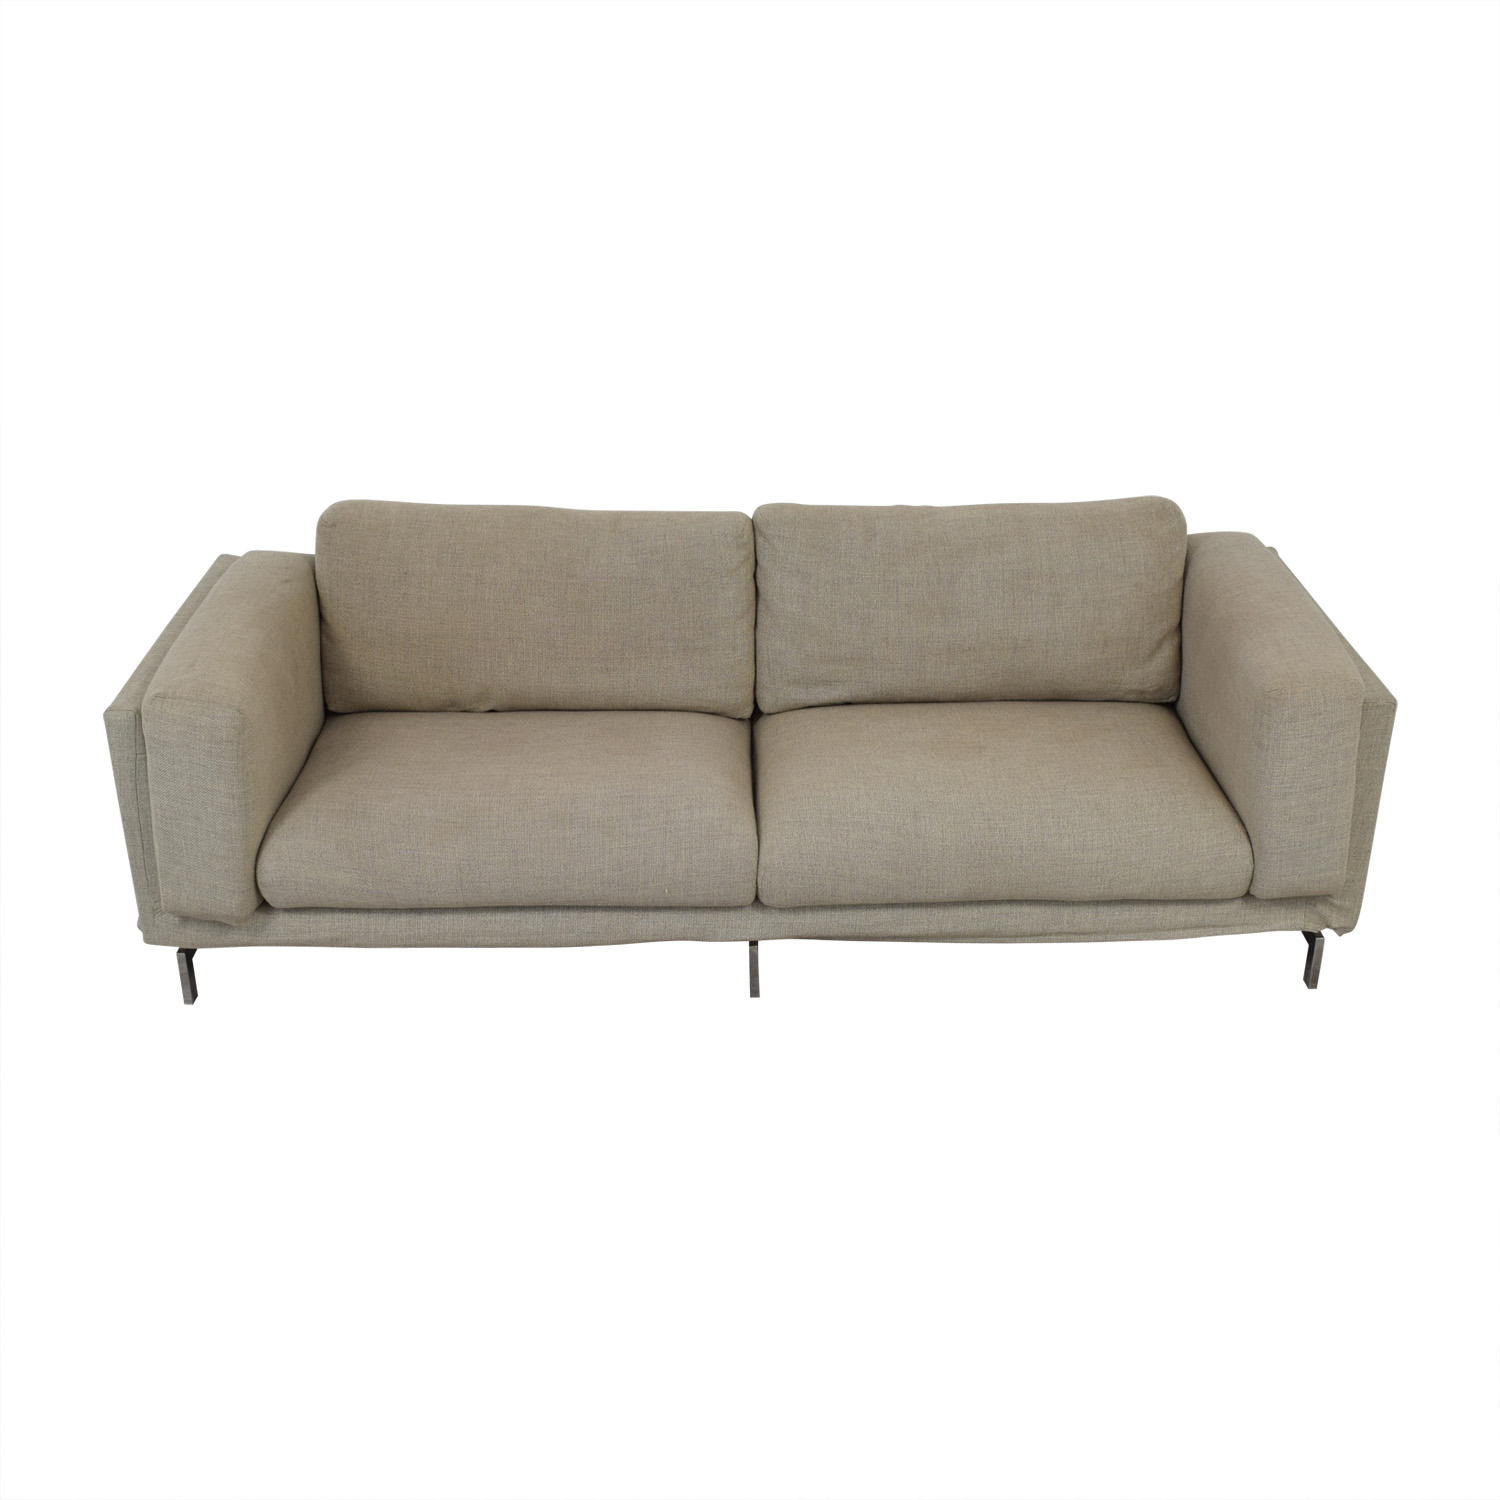 Ikea Bezüge Sofa 74 Off Ikea Ikea Grey And Beige Nockeby Two Cushion